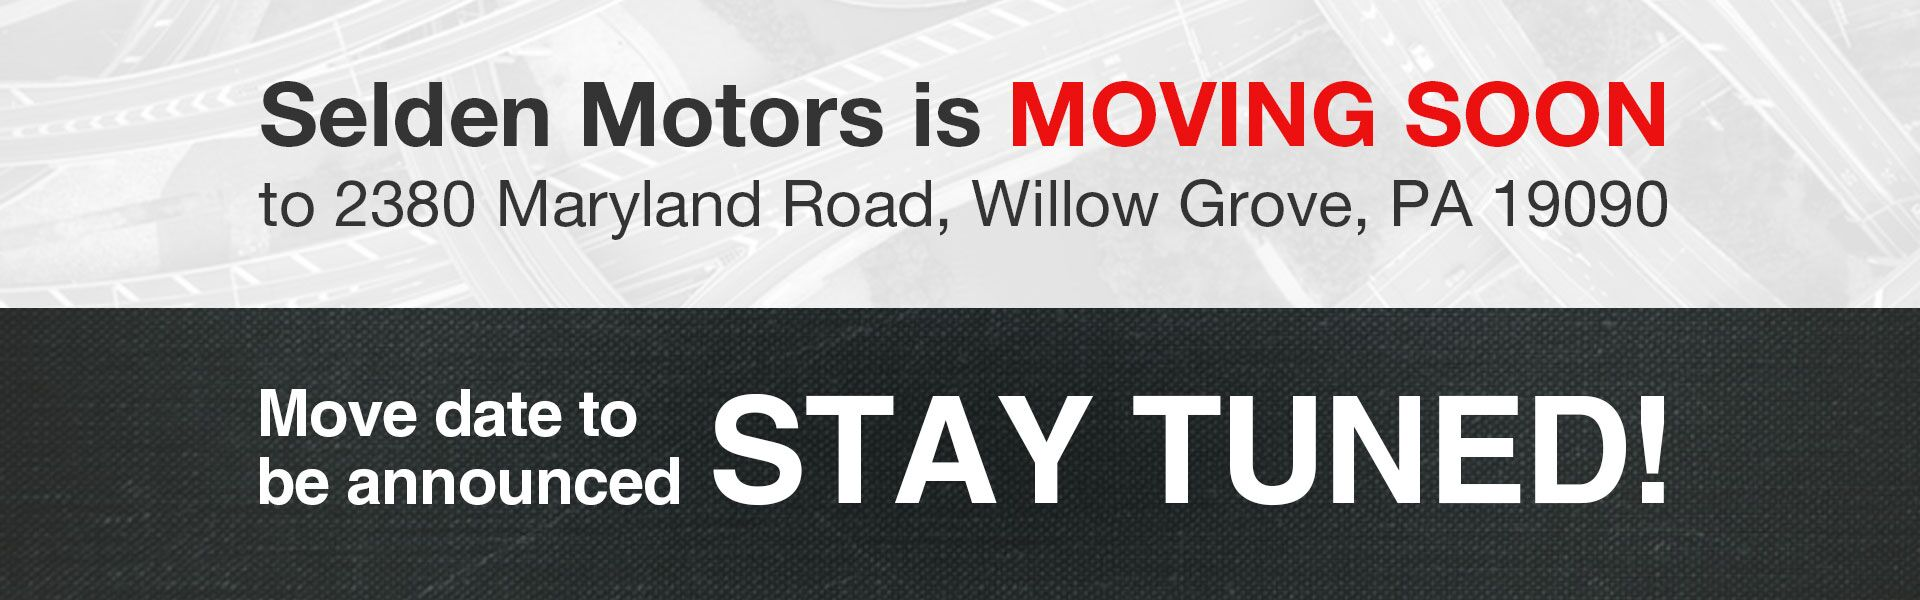 Selden Motors is Moving!